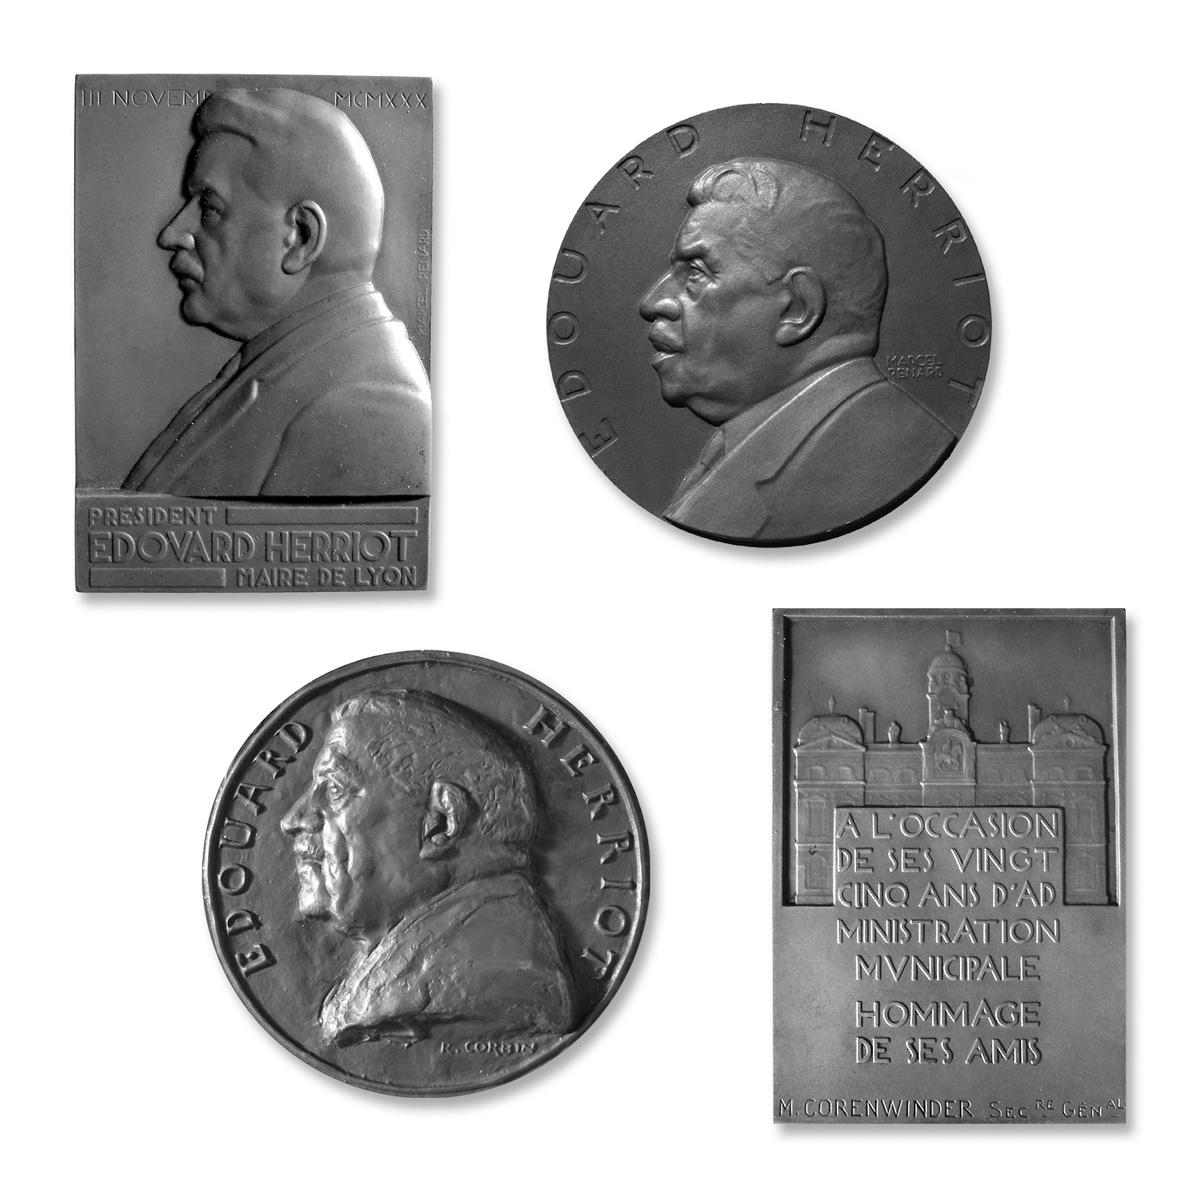 Edouard Herriot (1930) par Renard, face et revers Bronze - 75 x 51 mm ; Edouard Herriot (1952) par Renard, face Bronze - dia. 80 mm ; Edouard Herriot par Corbin, face Bronze dia. 81 mm. Photographies © Jean-Pol Donné